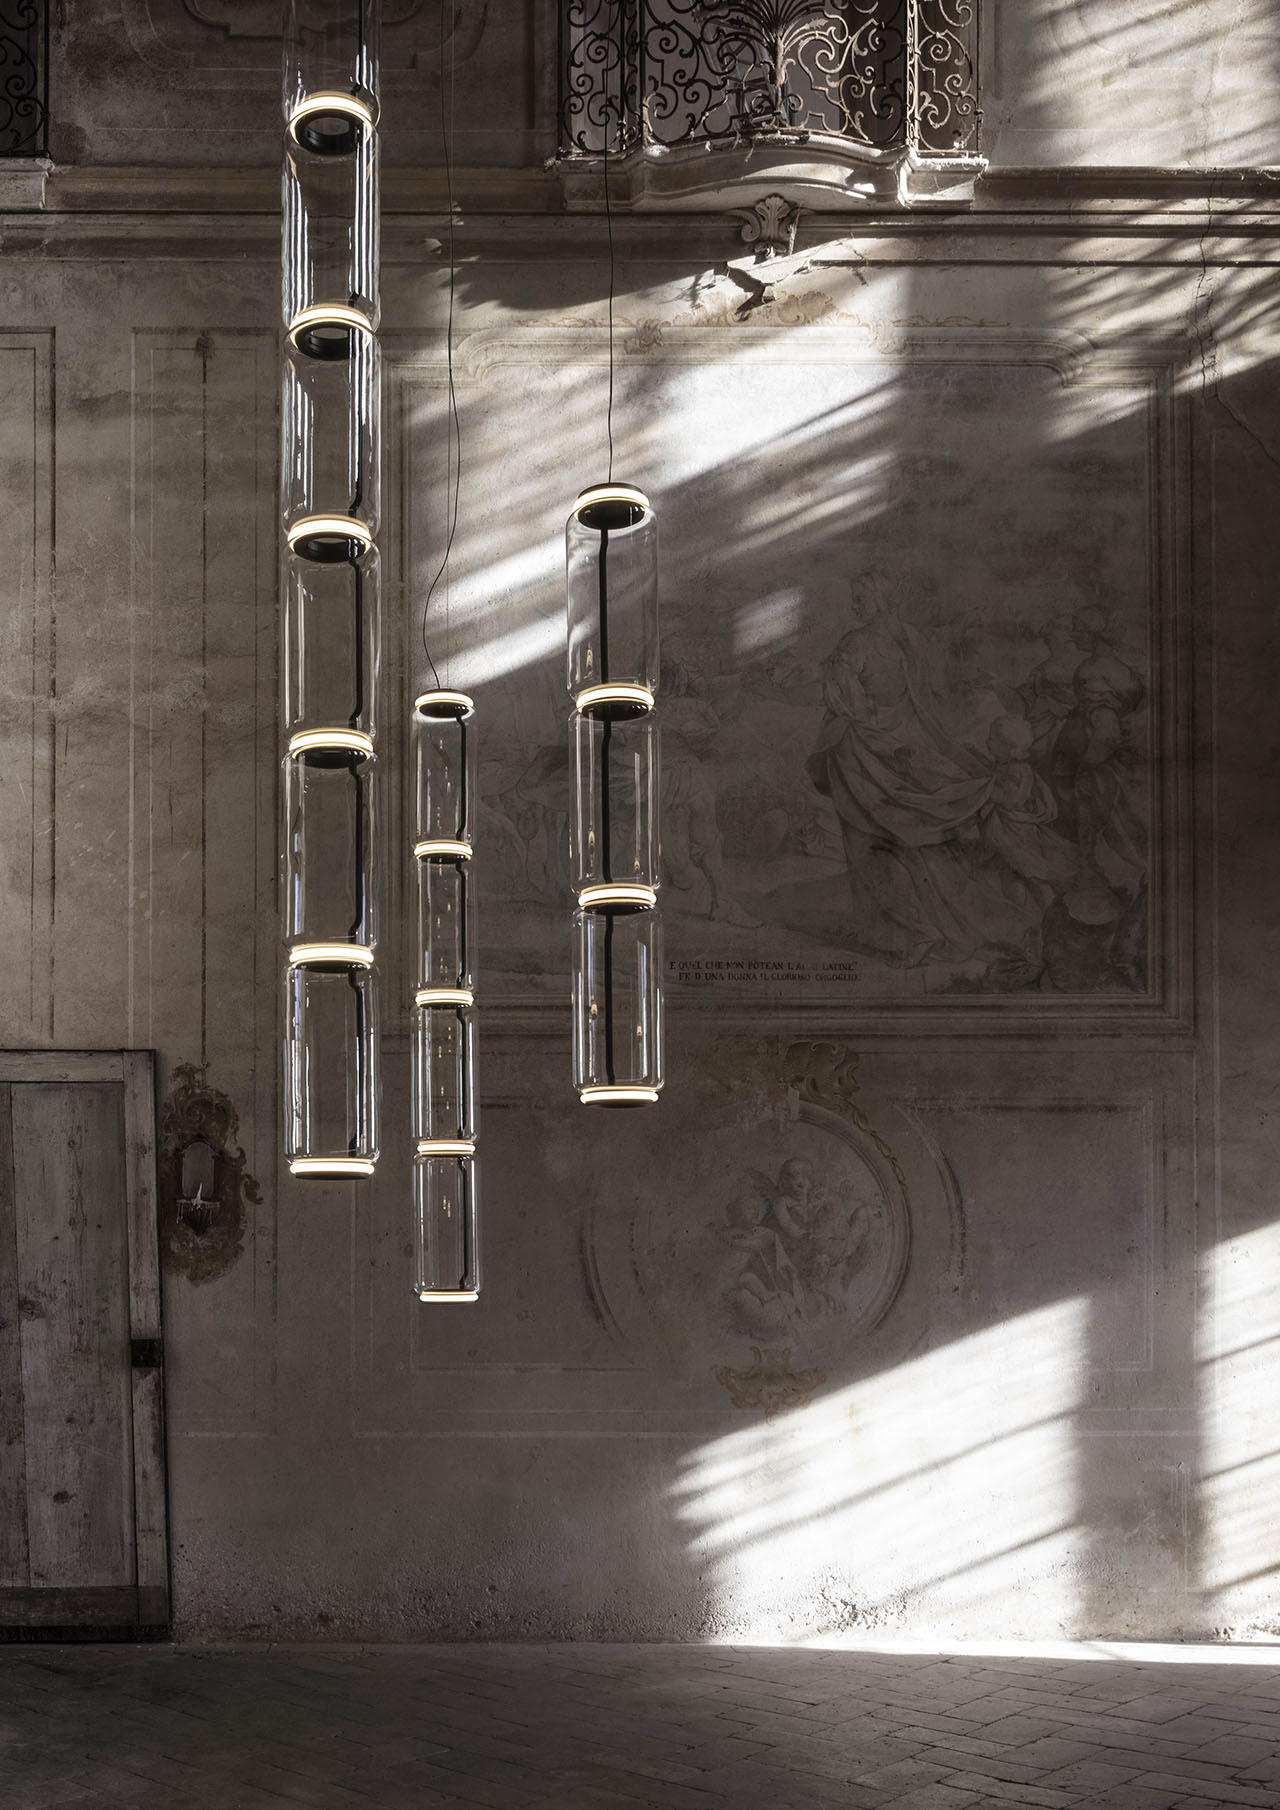 Noctambule collection of blown glass lamps by Konstantin Grcic for FLOS.photo by Santi Caleca.